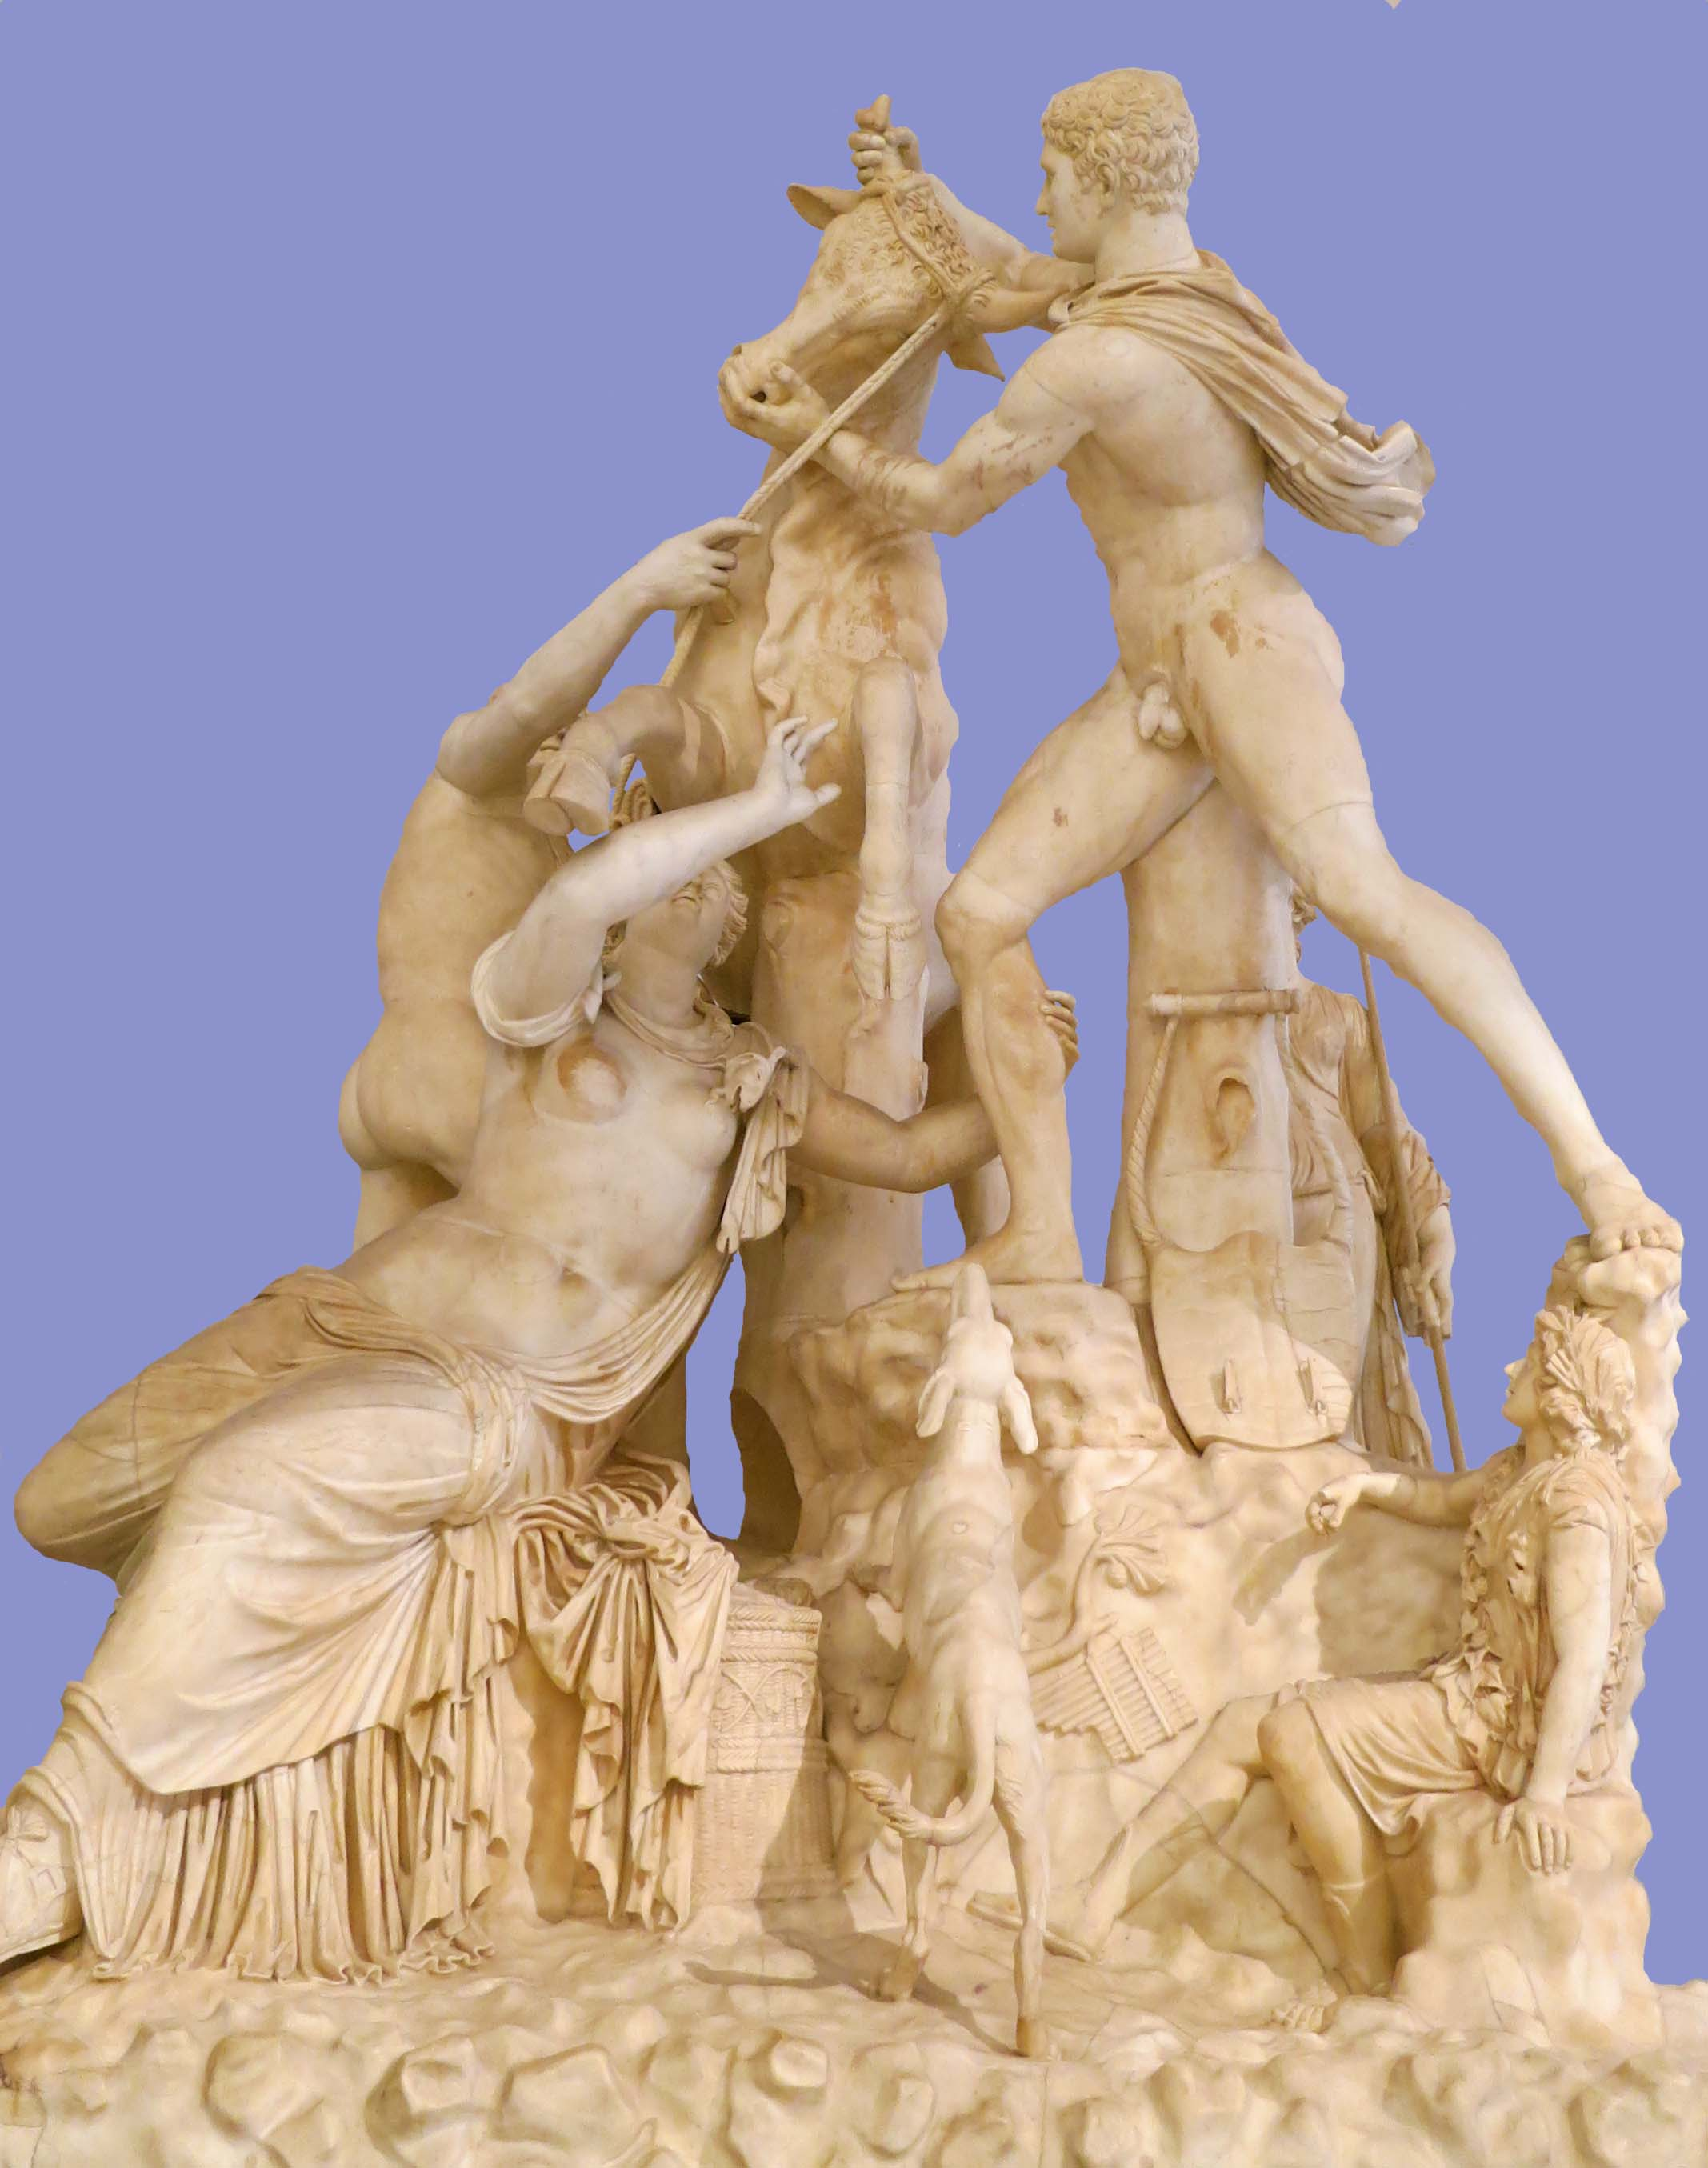 The Farnese Bull is the tallest ancient marble statue ever found. Michelangelo helped restore it by adding the dog. Photoshop and I added the blue background to better display the piece.